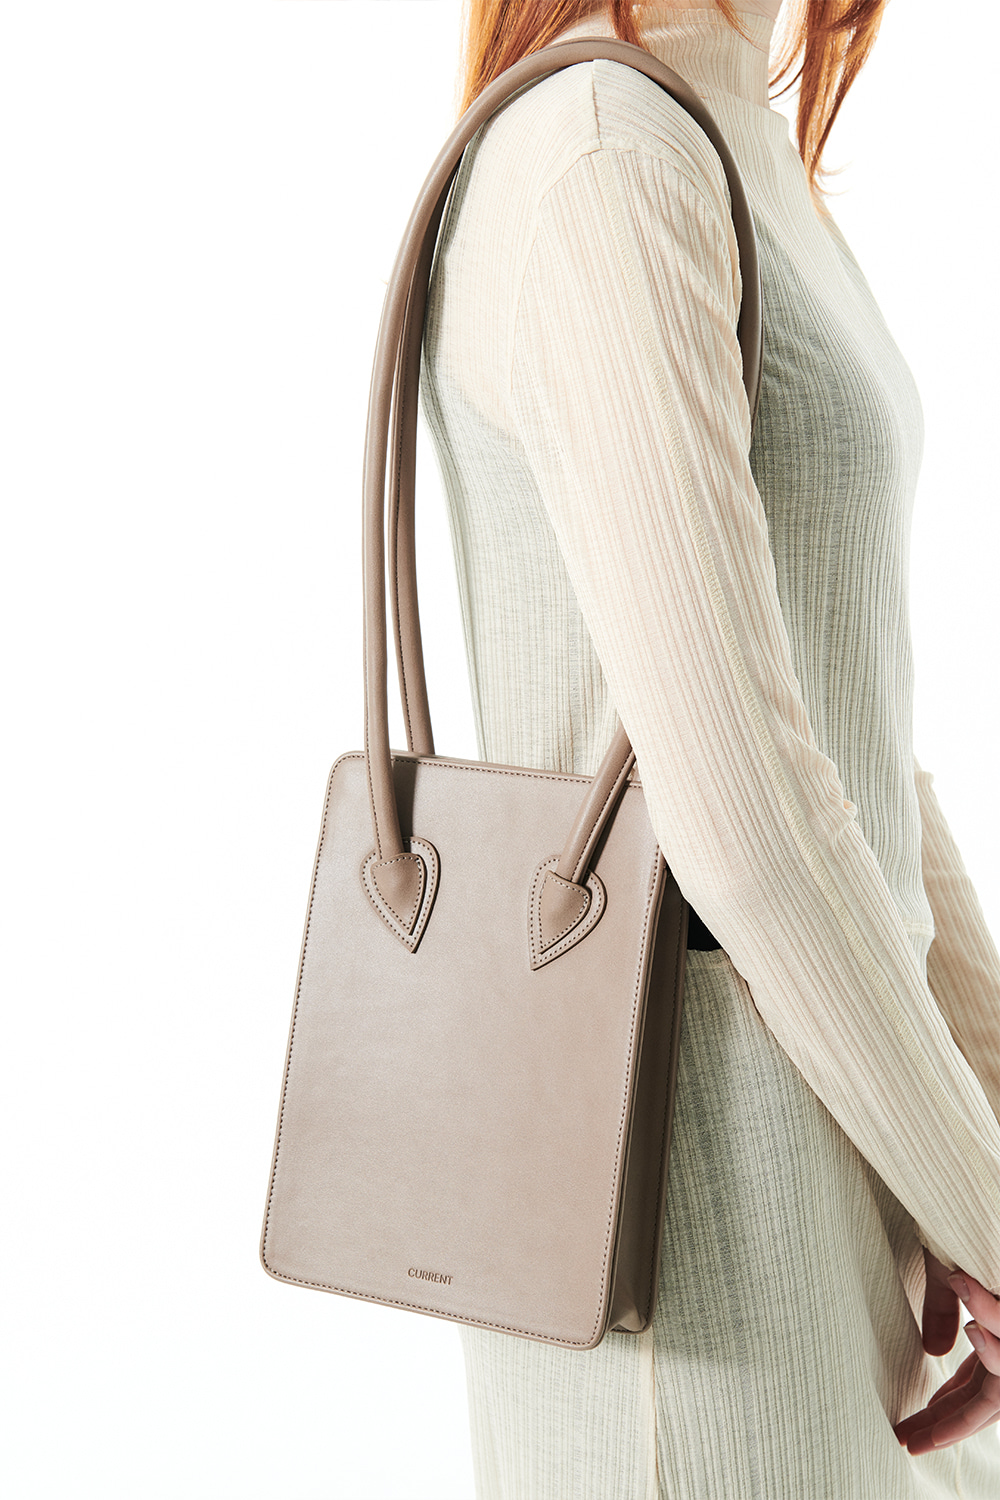 SQUARED MINI BAG KS [MOCHA]